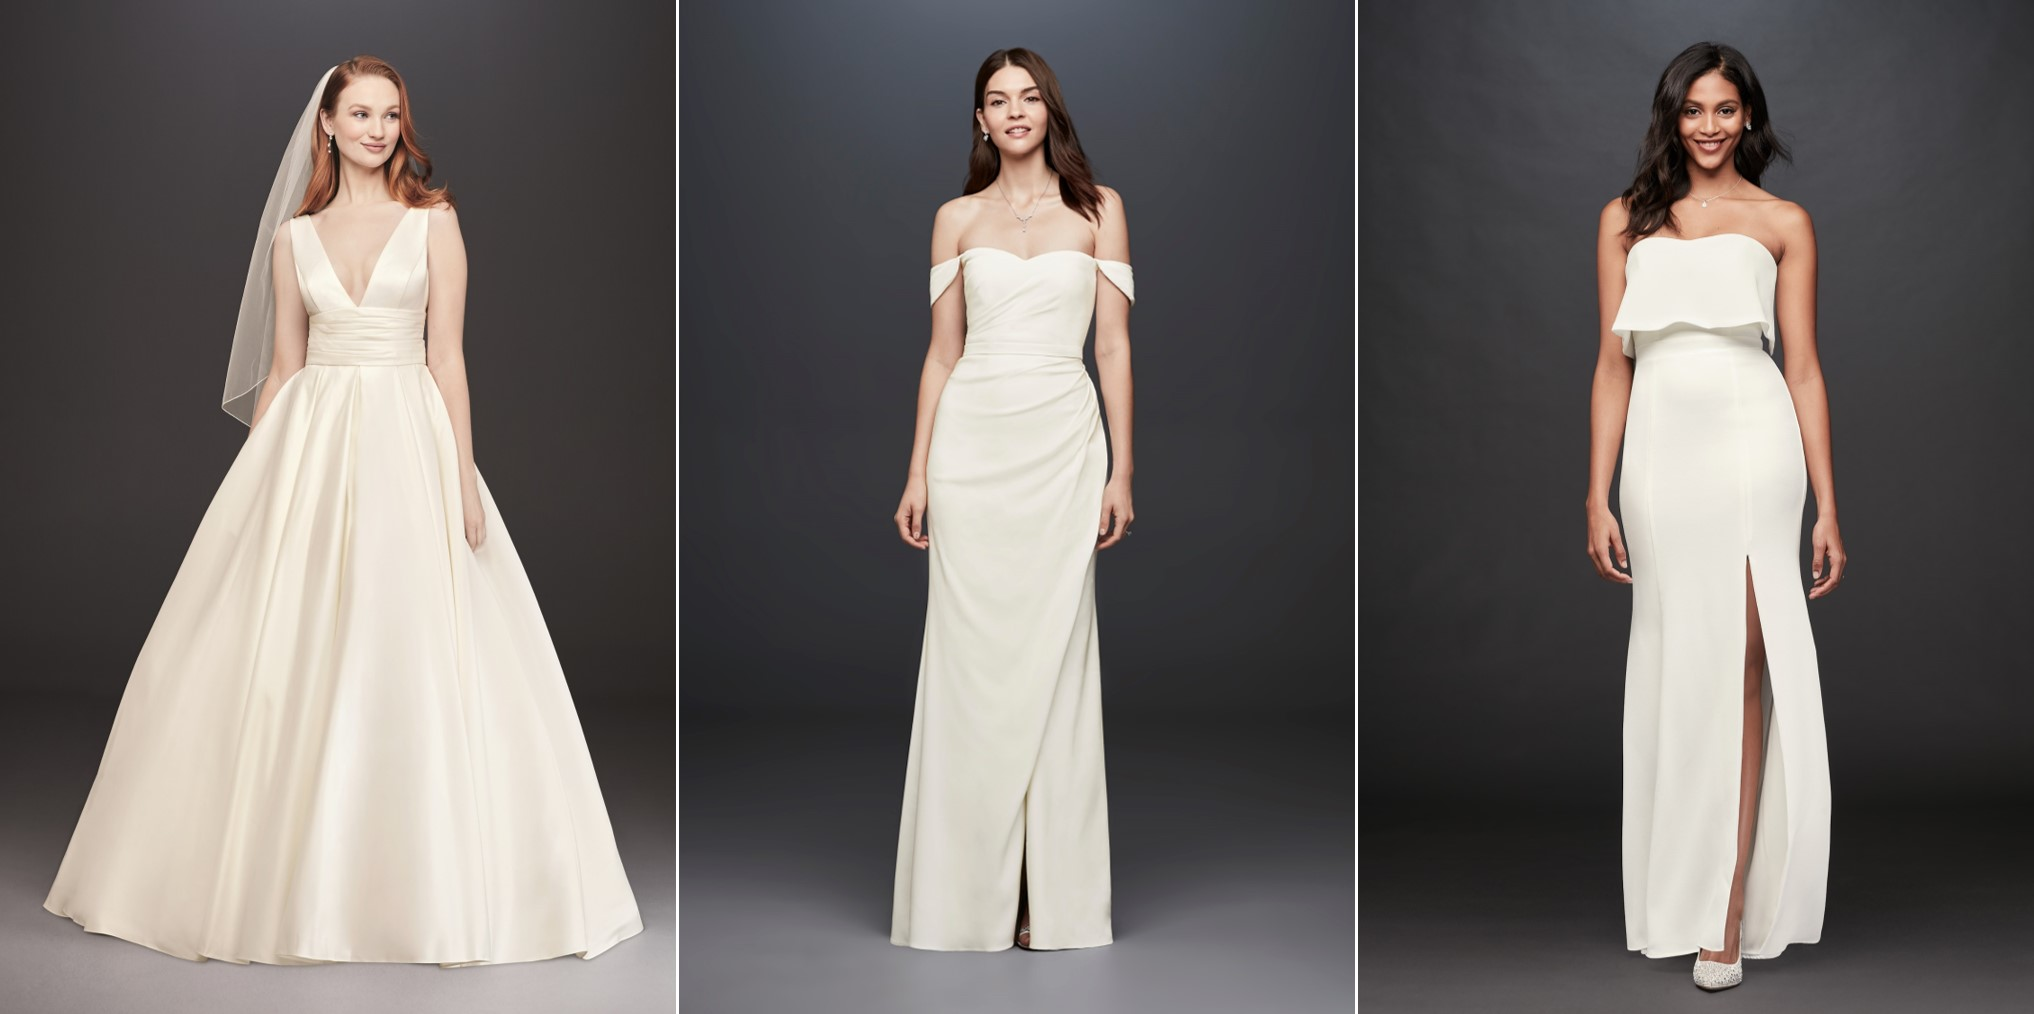 meghan markle s wedding dress look alike dresses david s bridal blog wedding dress look alike dresses